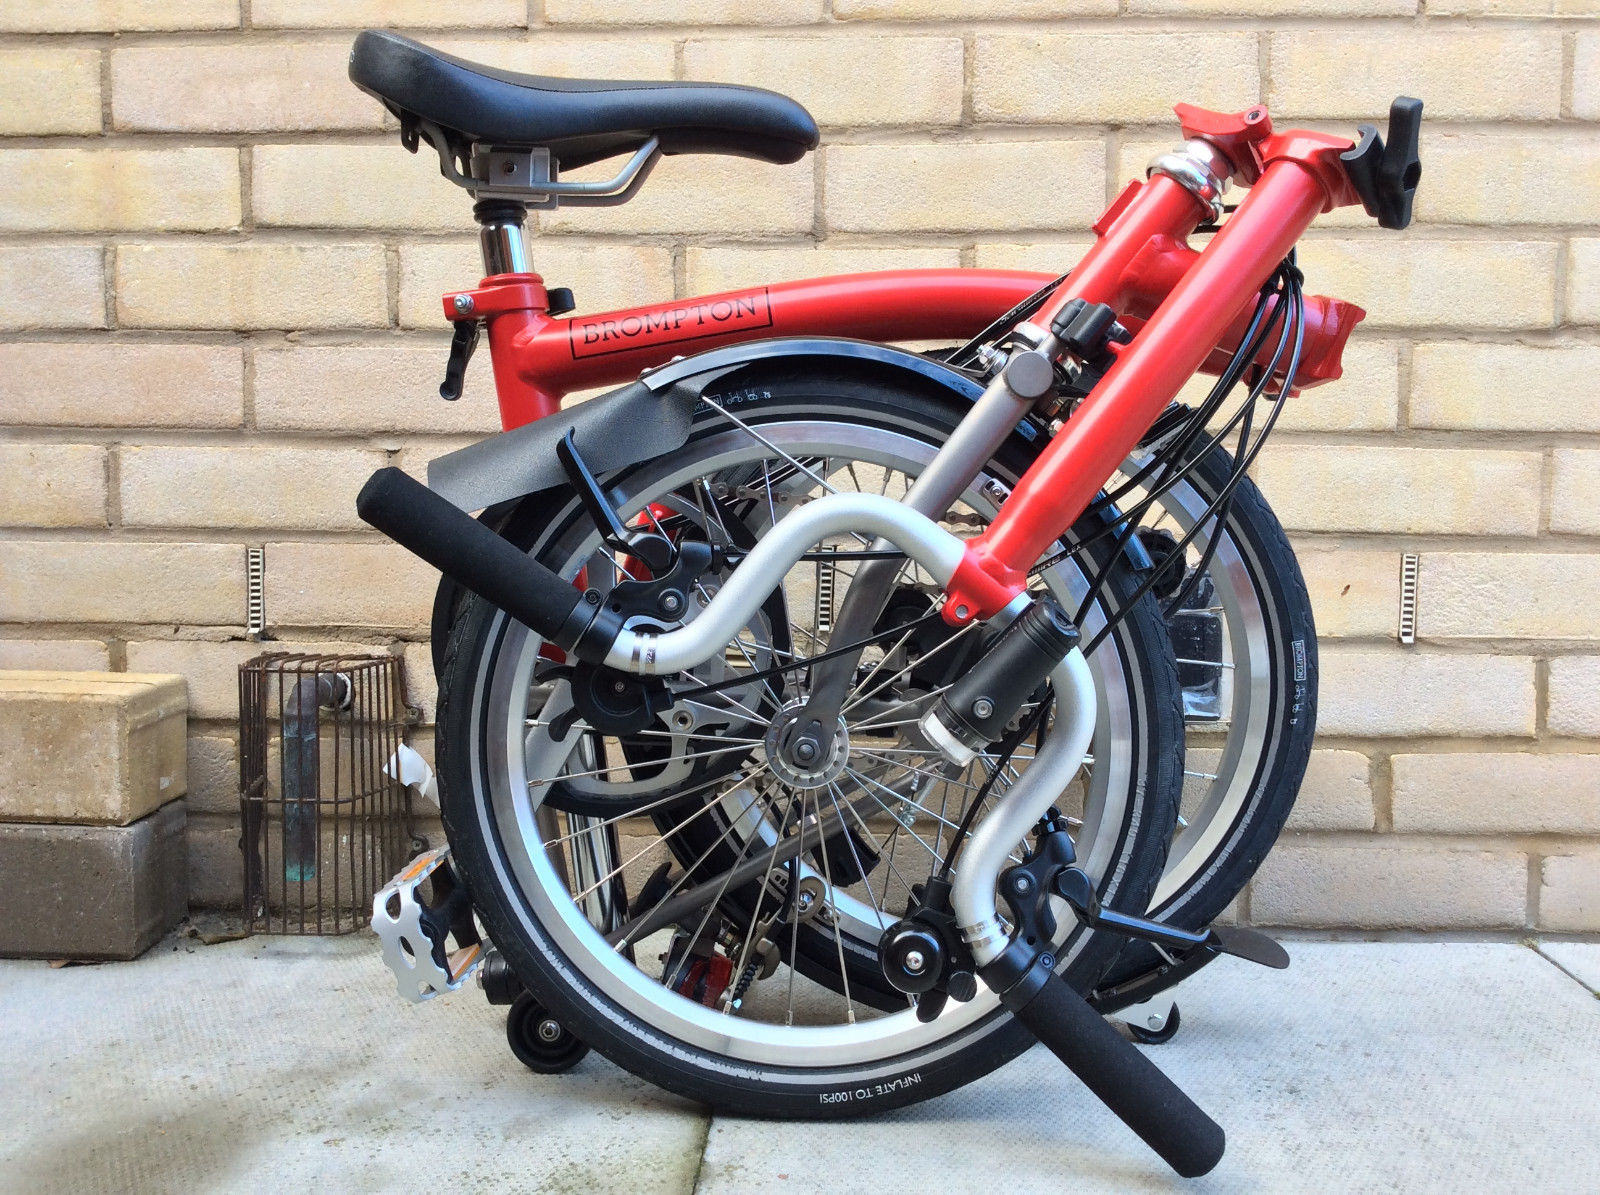 BROMPTON M6L-X SIX SPEED TITANIUM TI RED FOLDING BIKE BICYCLE  ....... $ 1, 799 USD